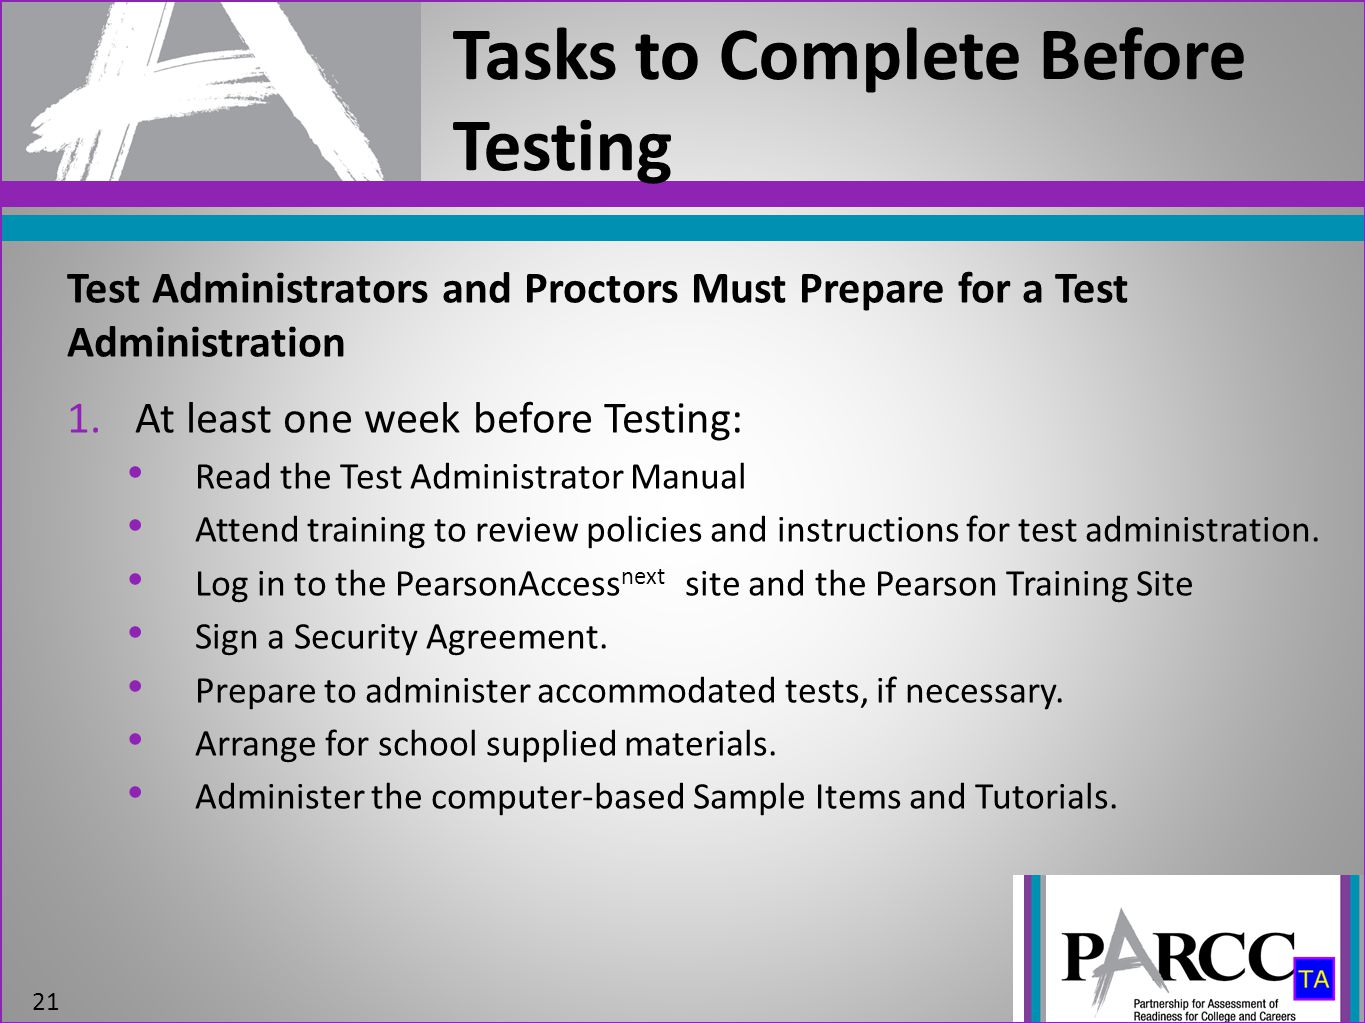 Tasks to Complete Before Testing